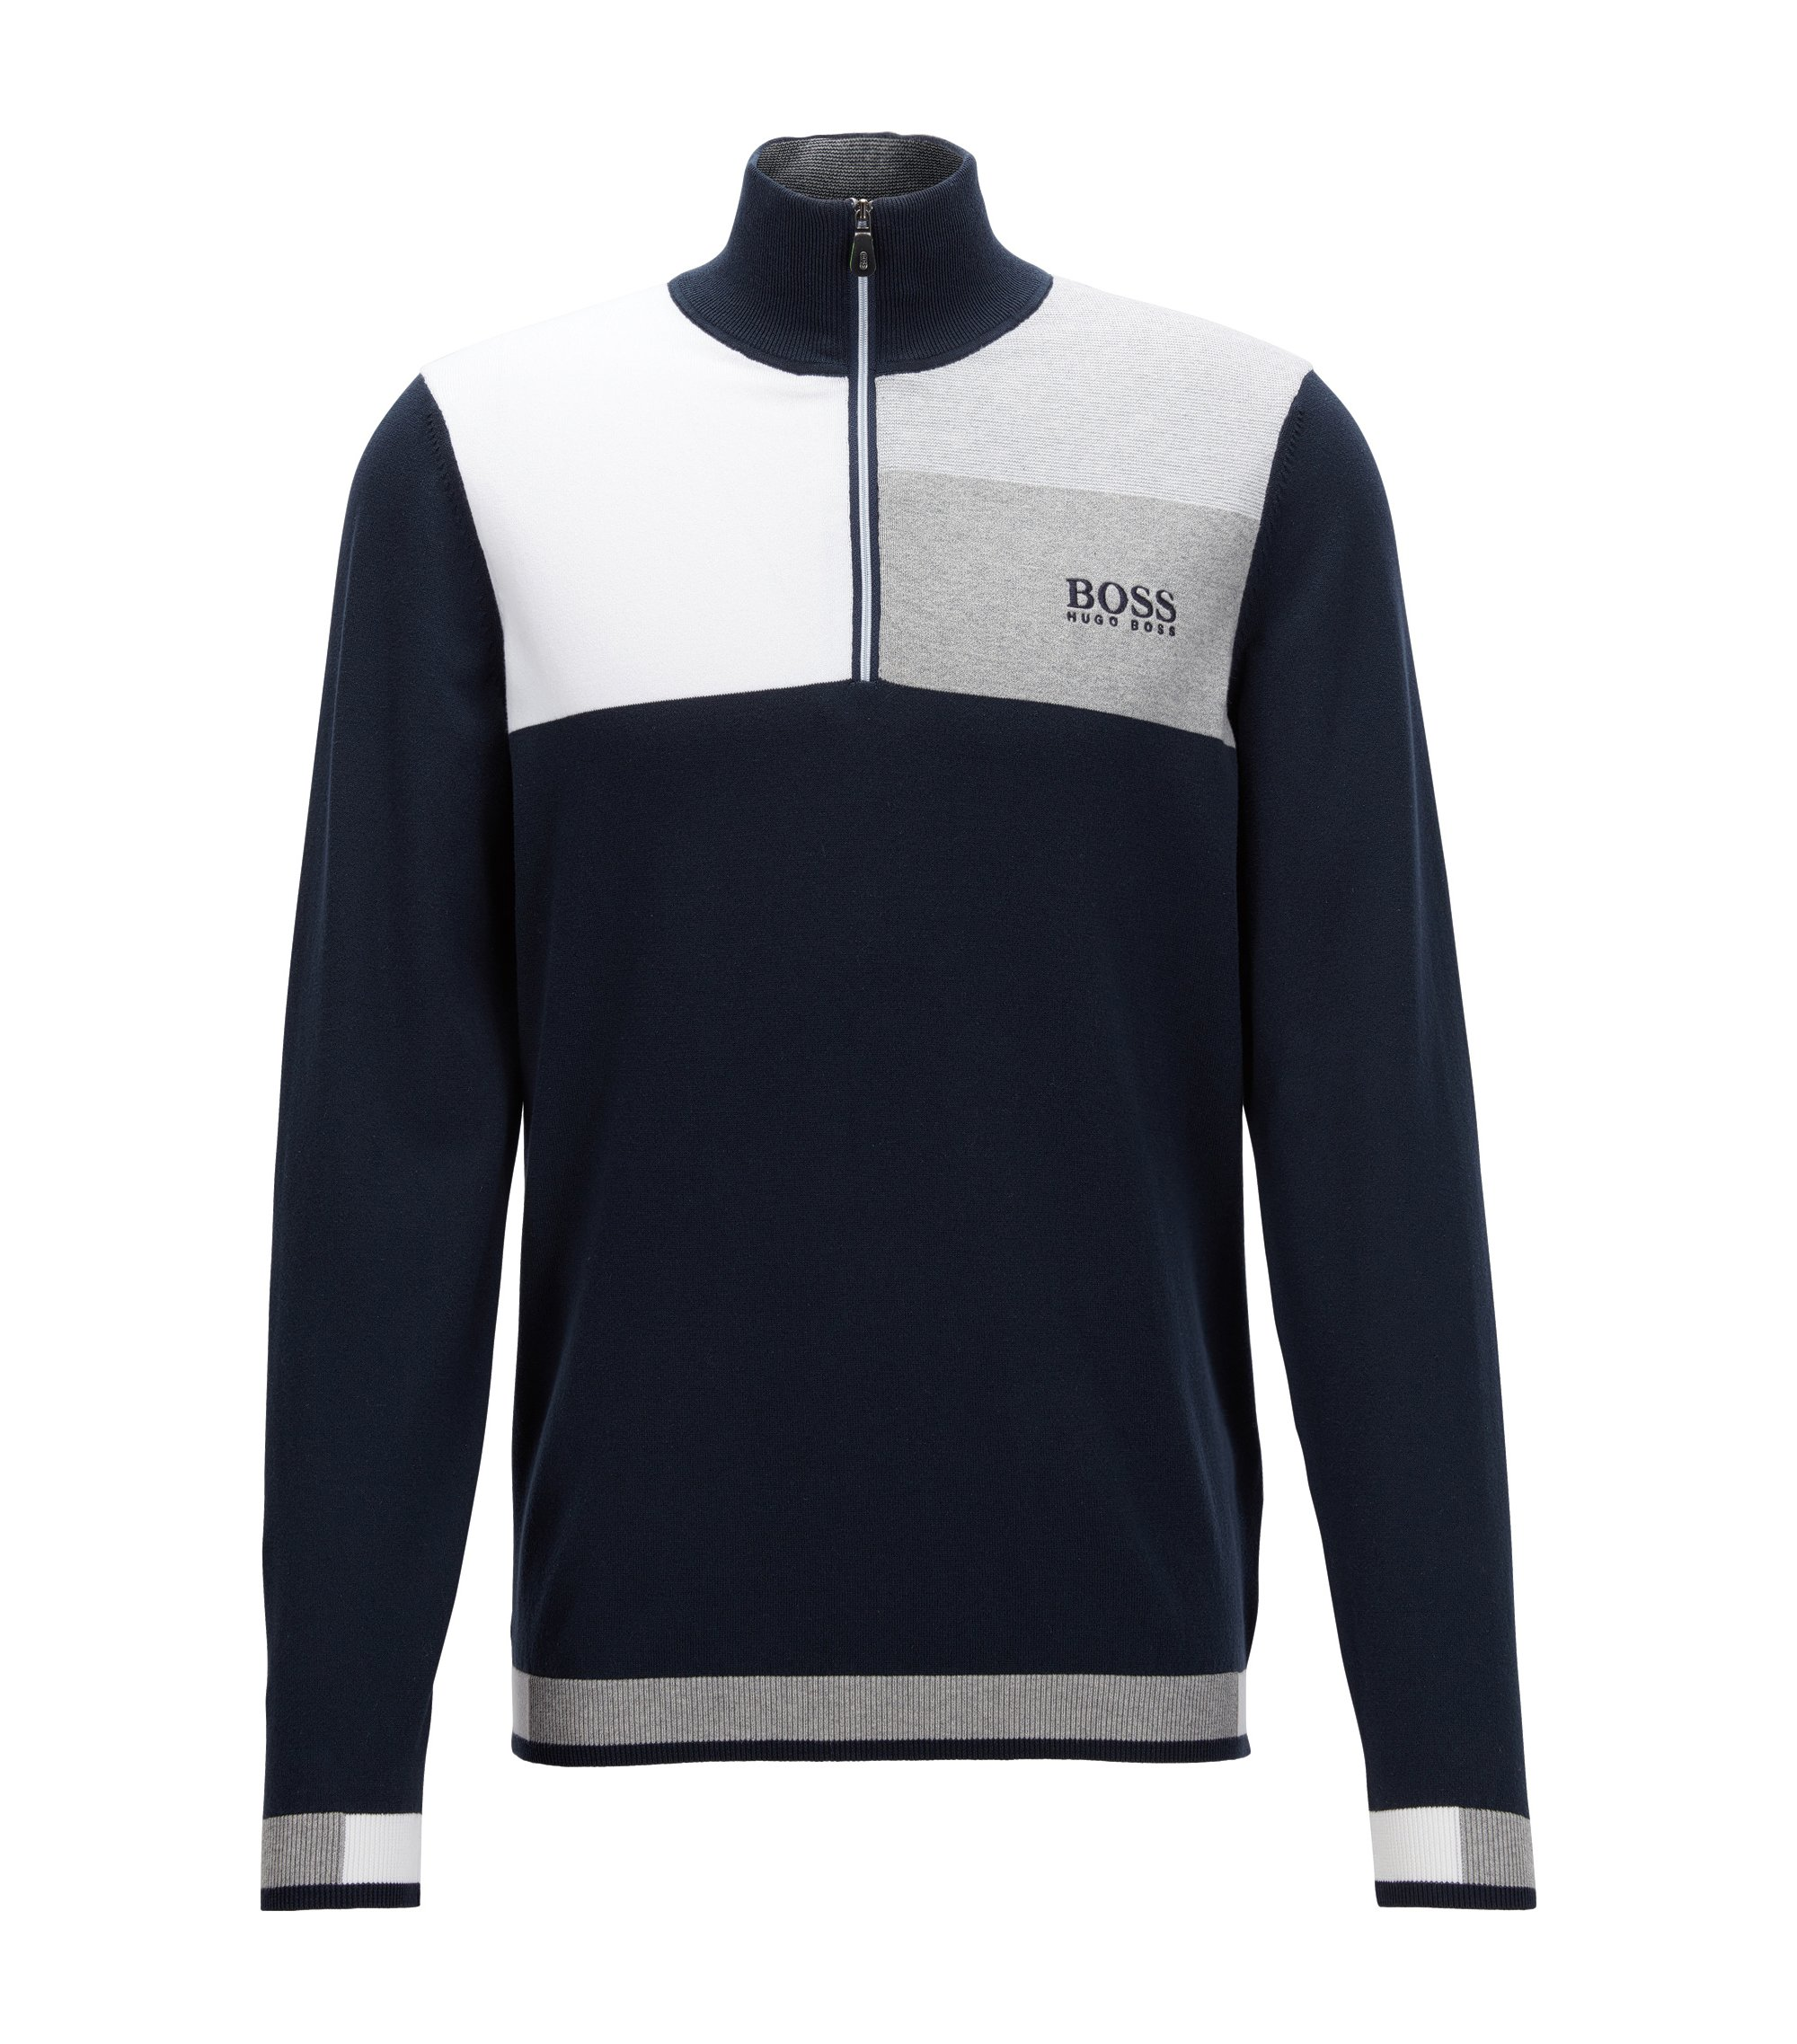 Pullover aus Baumwoll-Mix mit Troyer-Kragen aus der Professional Golf Collection, Dunkelblau